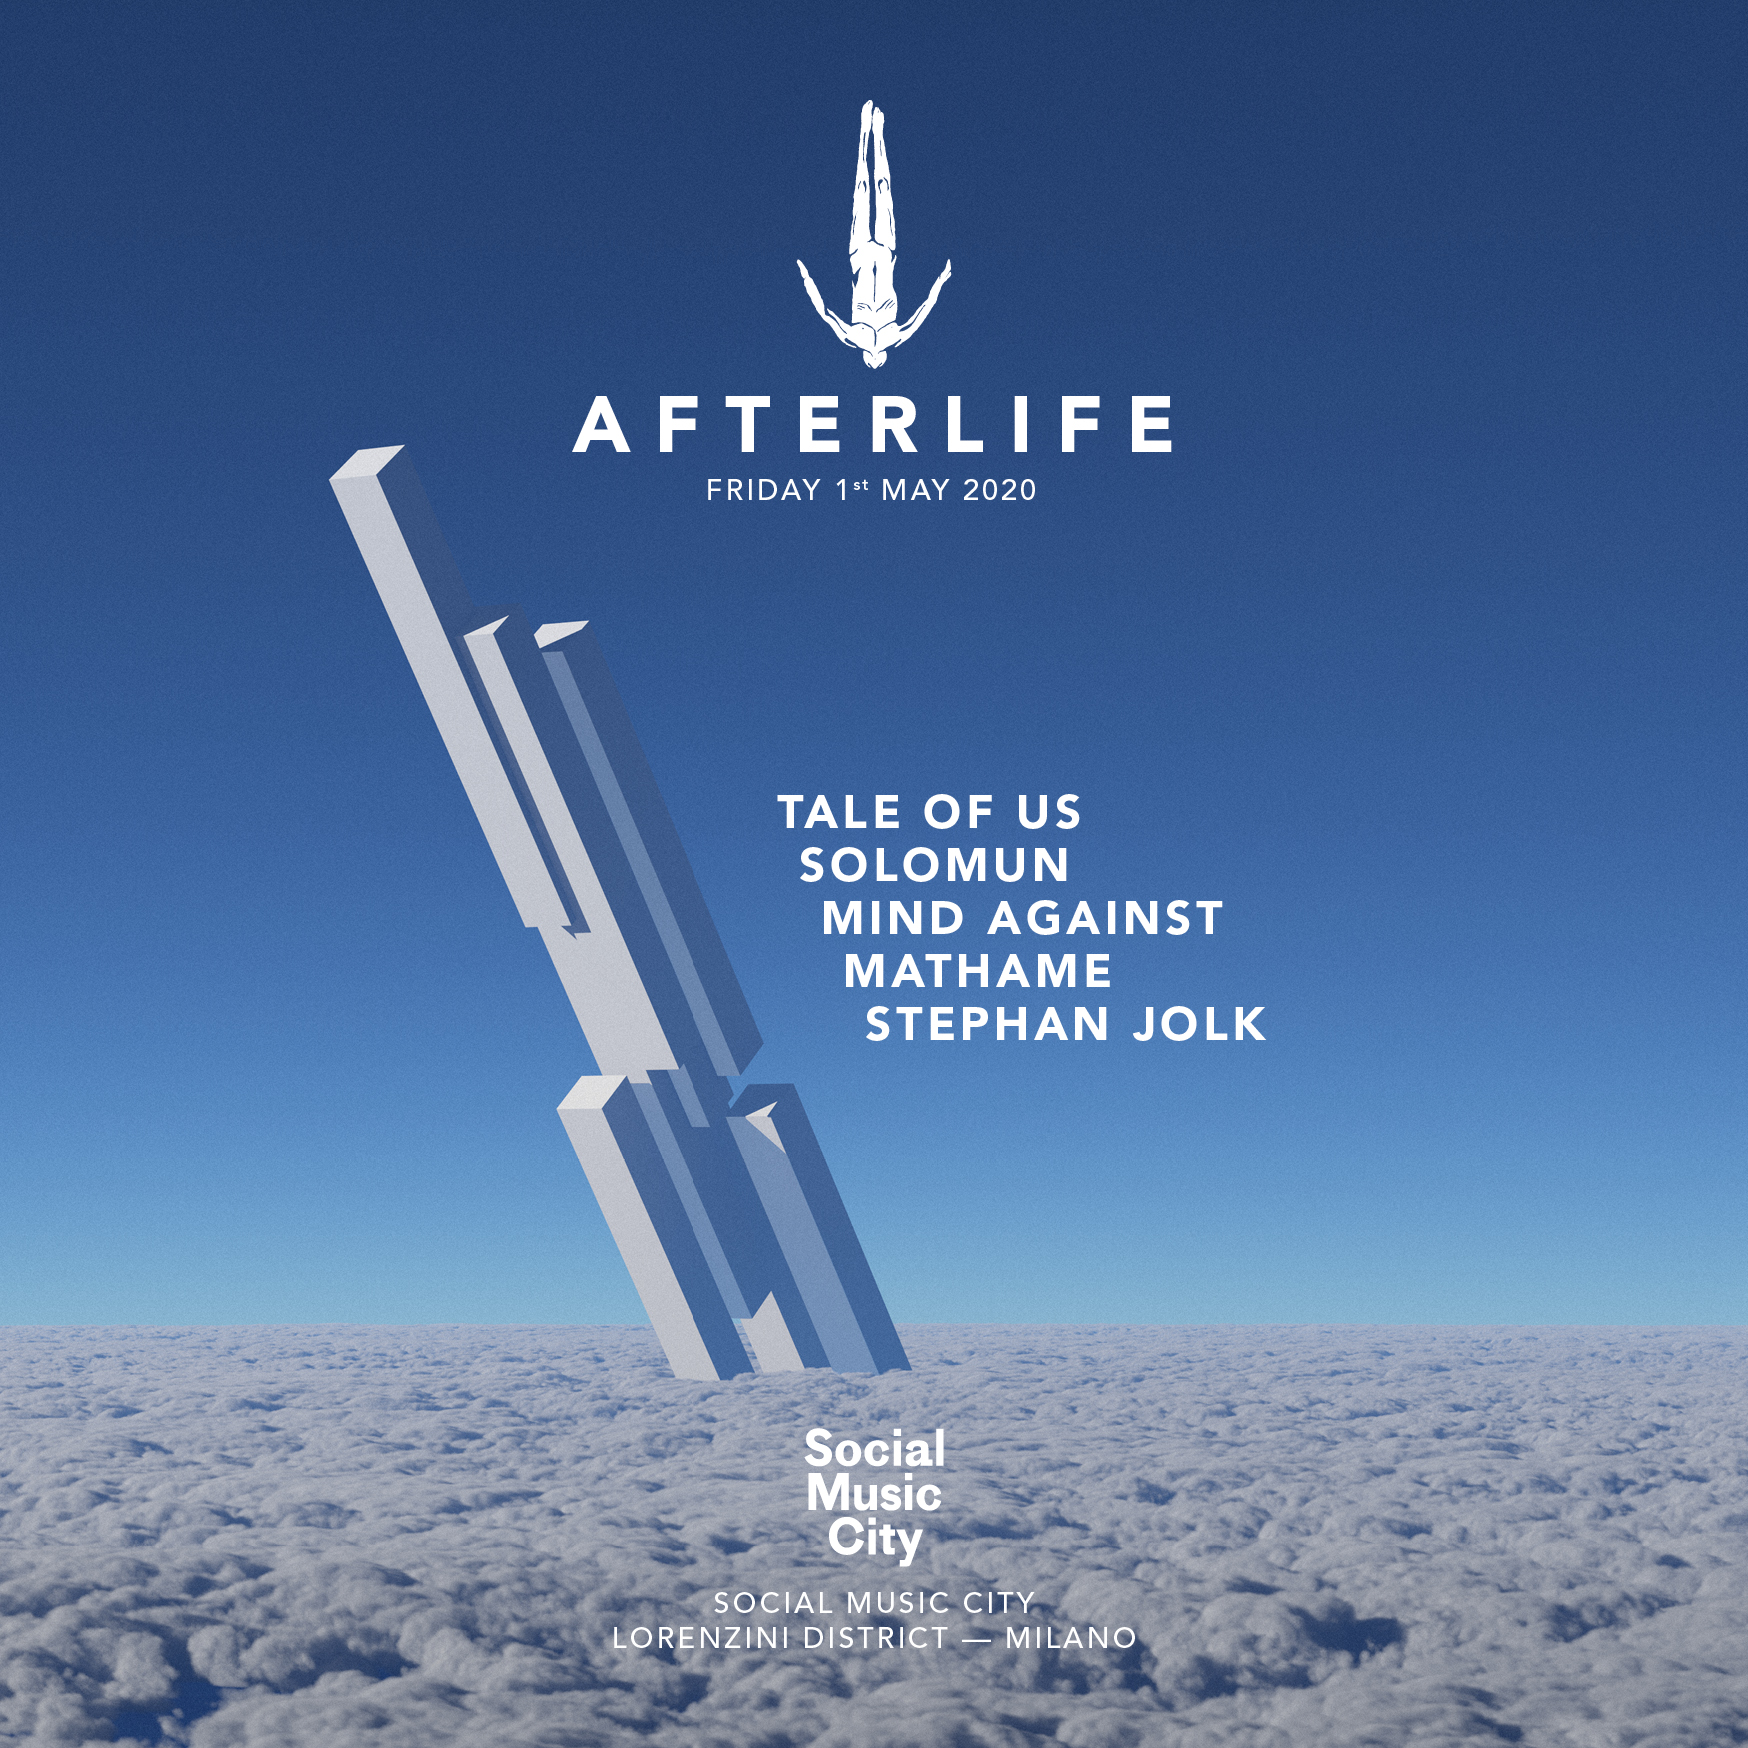 Afterlife Milan at SMC 2020 (POSTPONED)   Social Music City